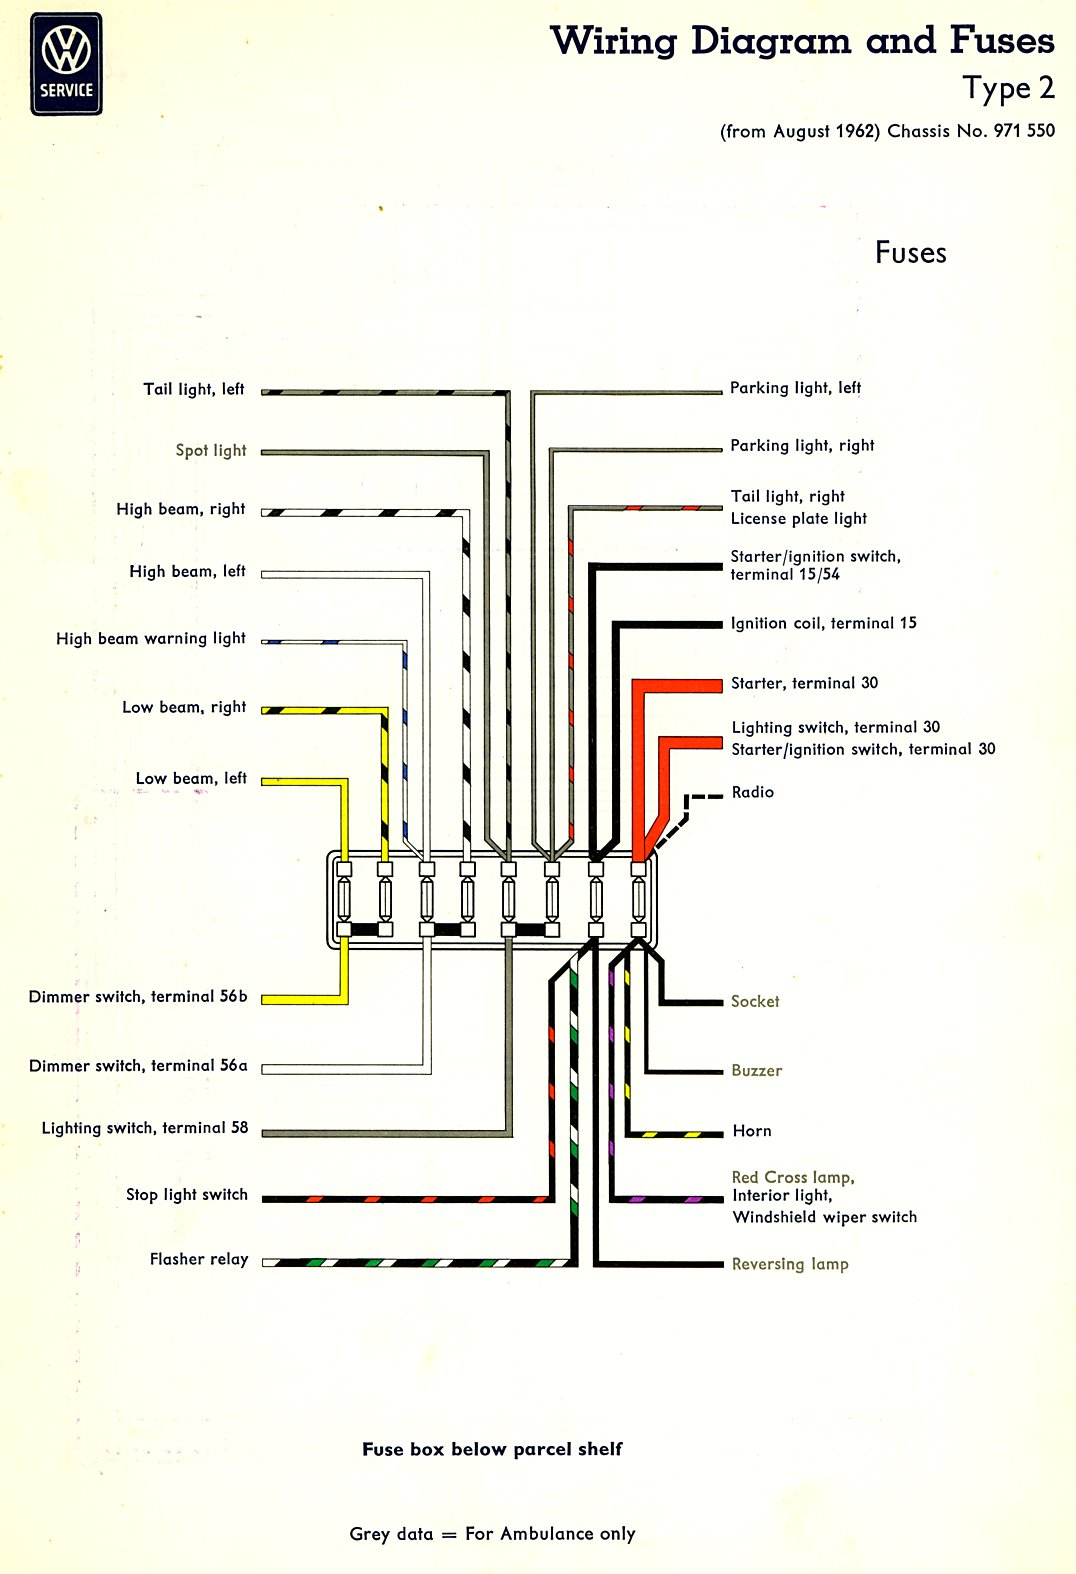 bus_63_fuses thesamba com type 2 wiring diagrams GMC Fuse Box Diagrams at bakdesigns.co